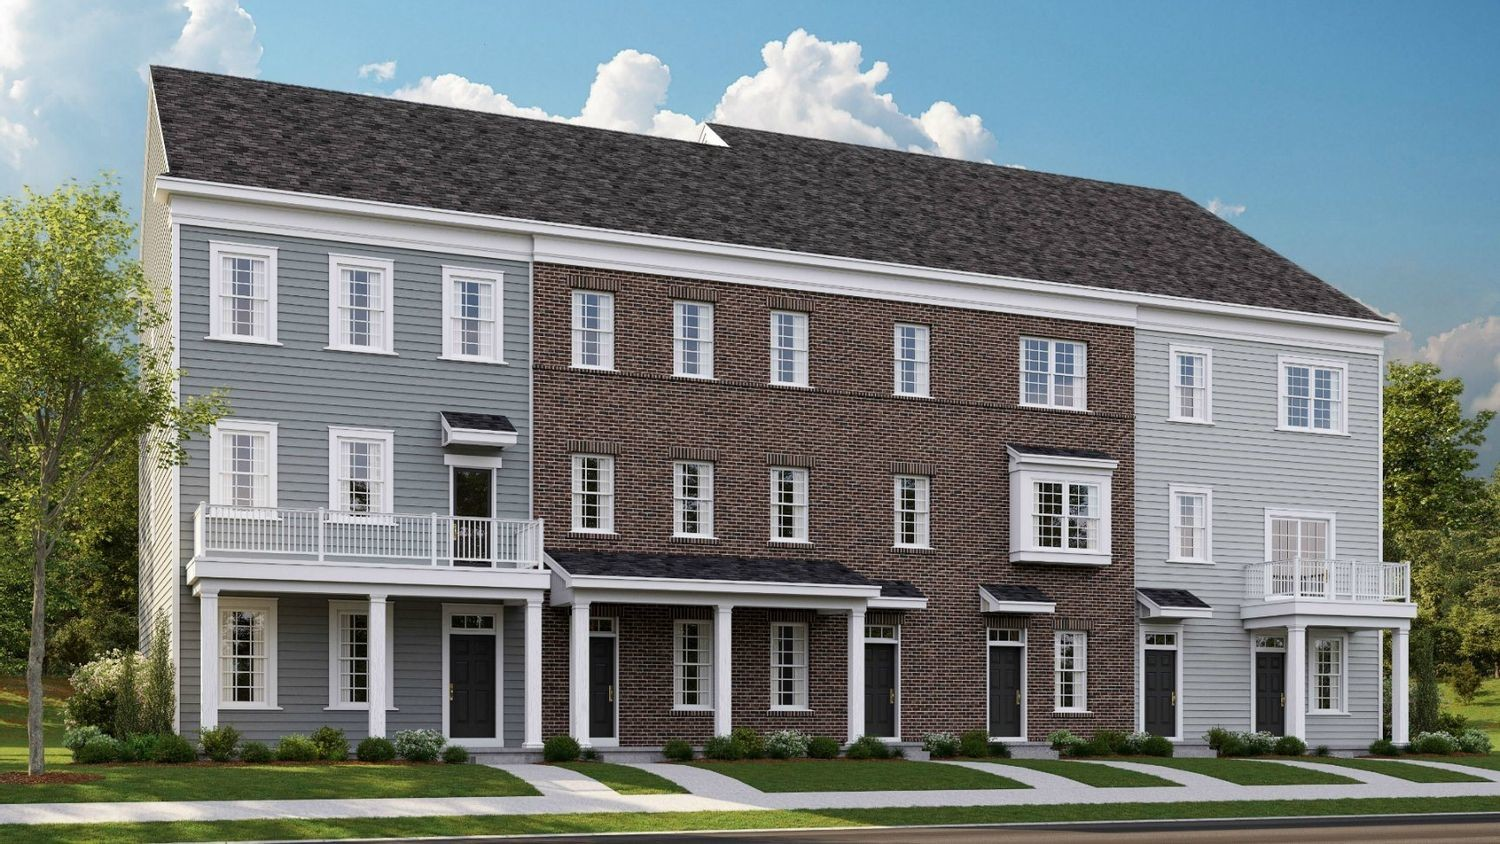 Move In Ready New Home In Waterside By Lennar - Waterside Traditional Towns Community